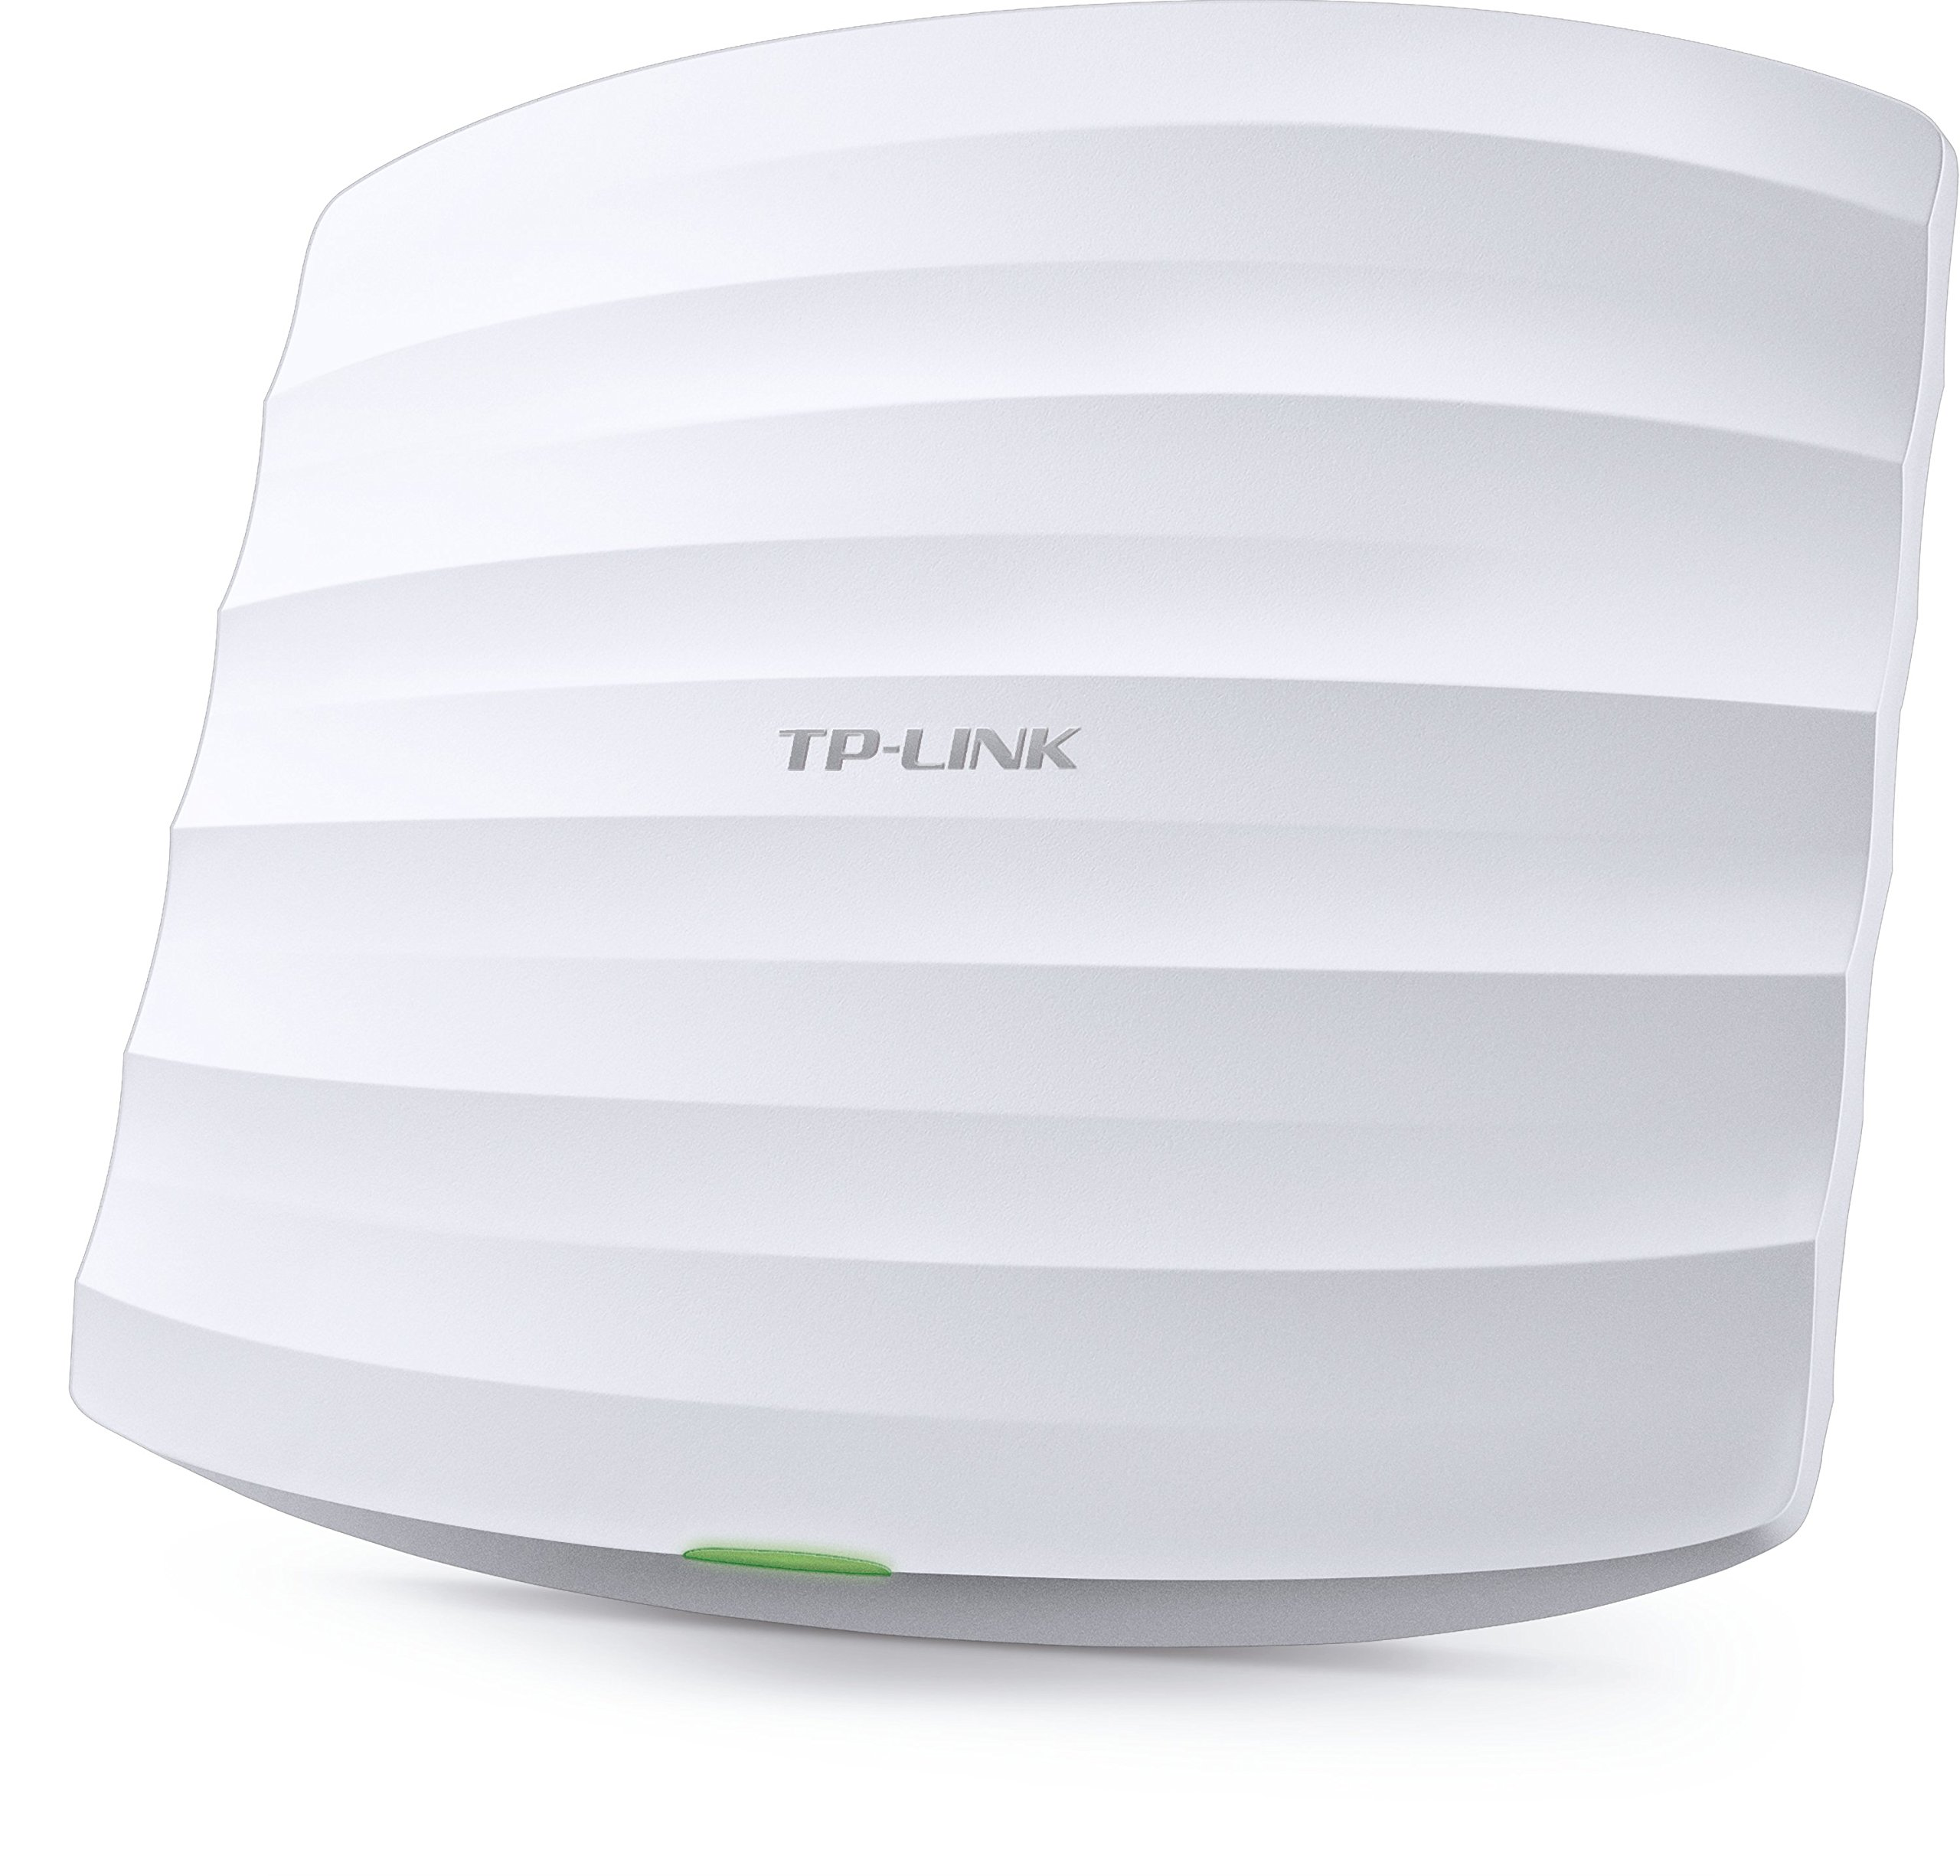 TP-Link AC1200 Wireless Wi-Fi Access Point - Dual Band, Gigabit, Ceiling Mount (EAP320) by TP-Link